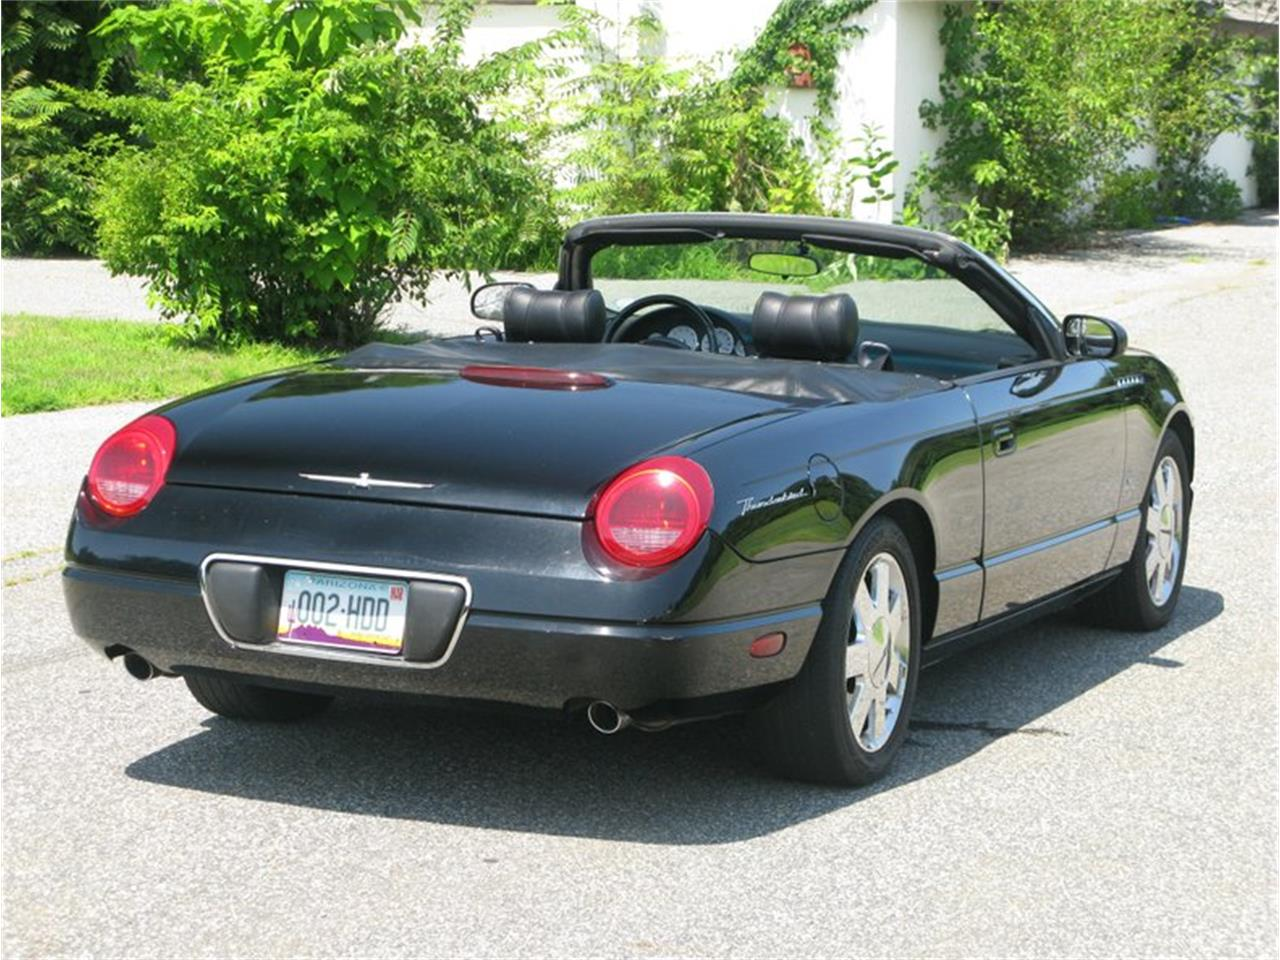 2003 Ford Thunderbird (CC-1247659) for sale in Saratoga Springs, New York